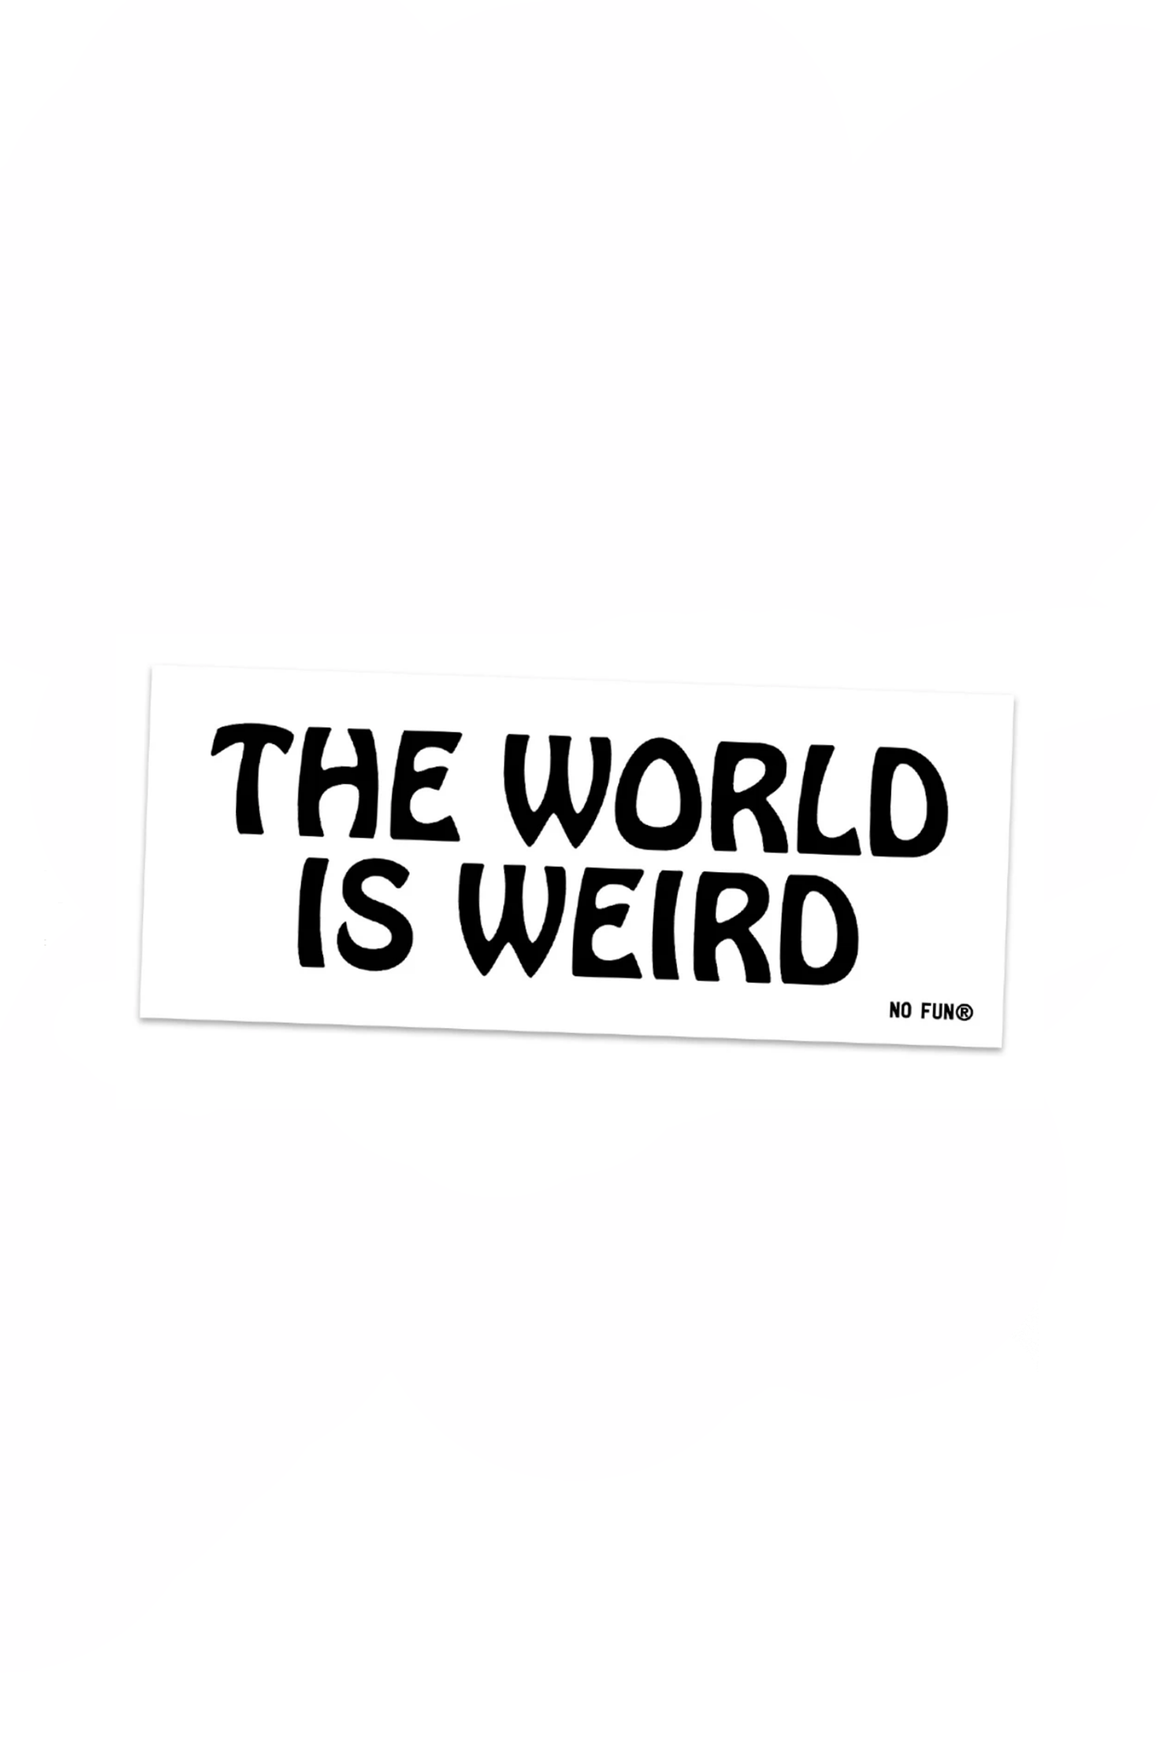 The World is Weird Bumper Sticker